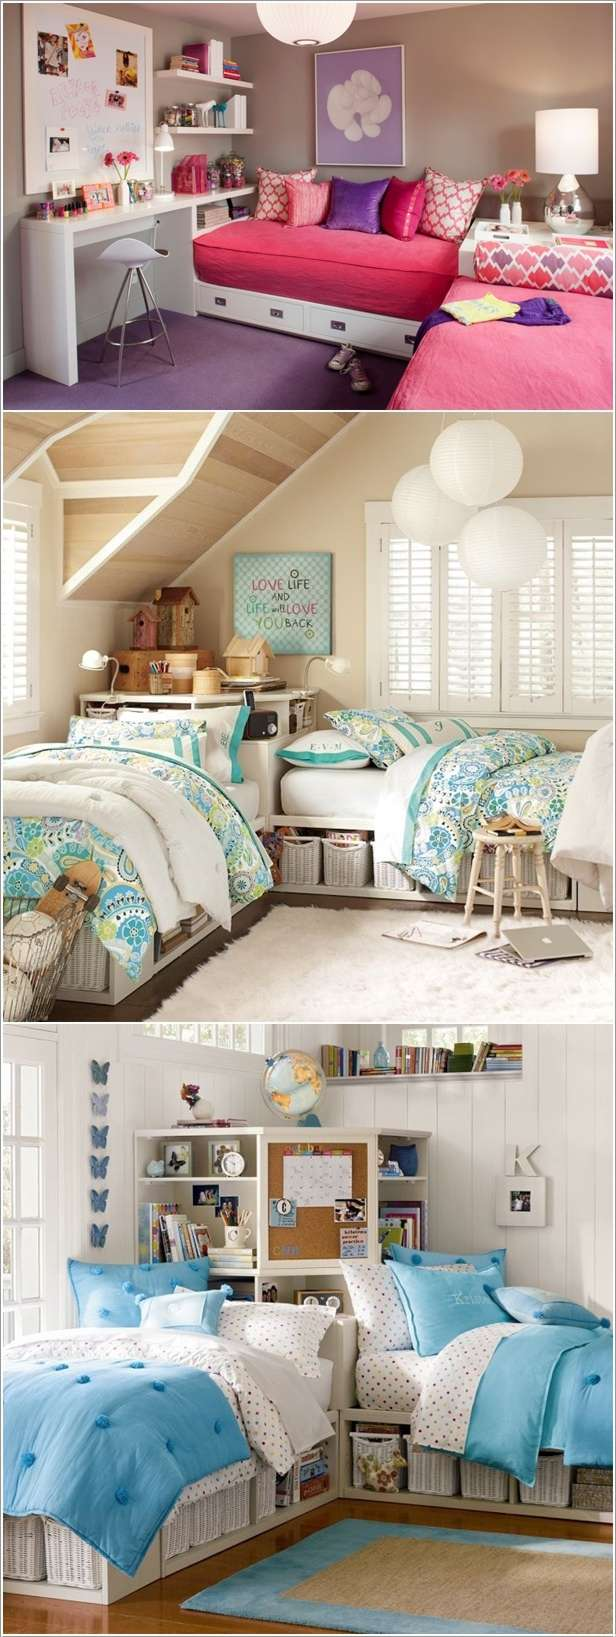 311 - Twin Bed Design